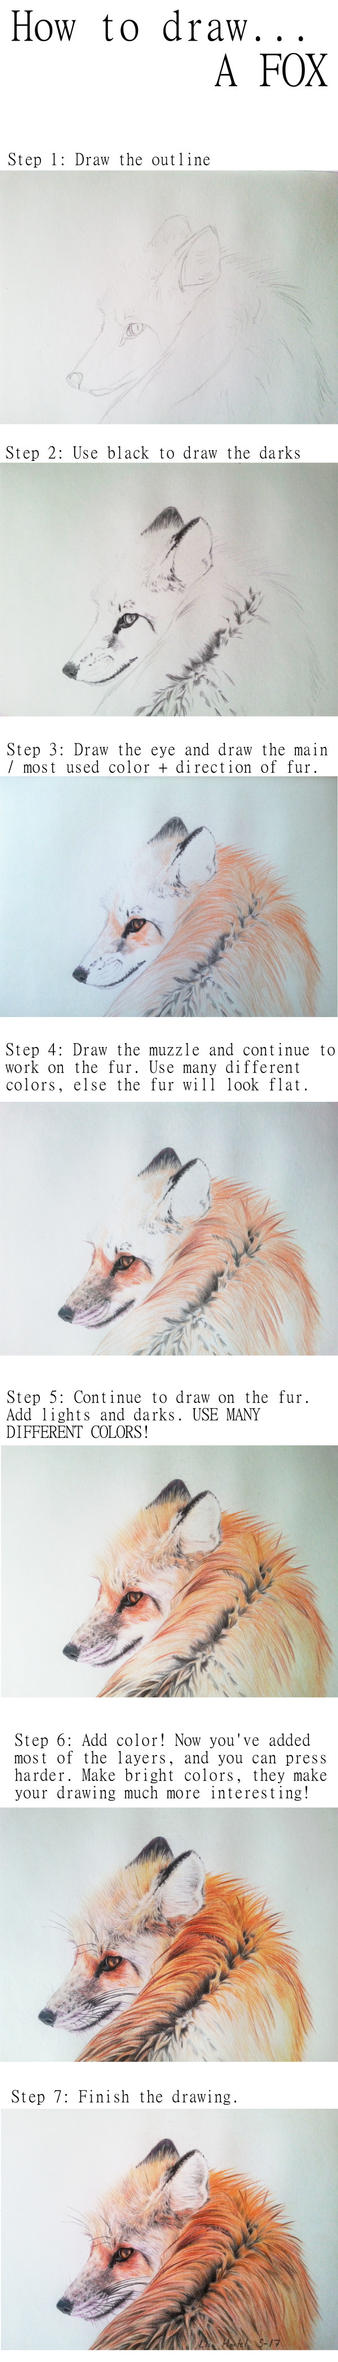 How to draw a fox portrait / WIPs for Looking back by BeckyKidus